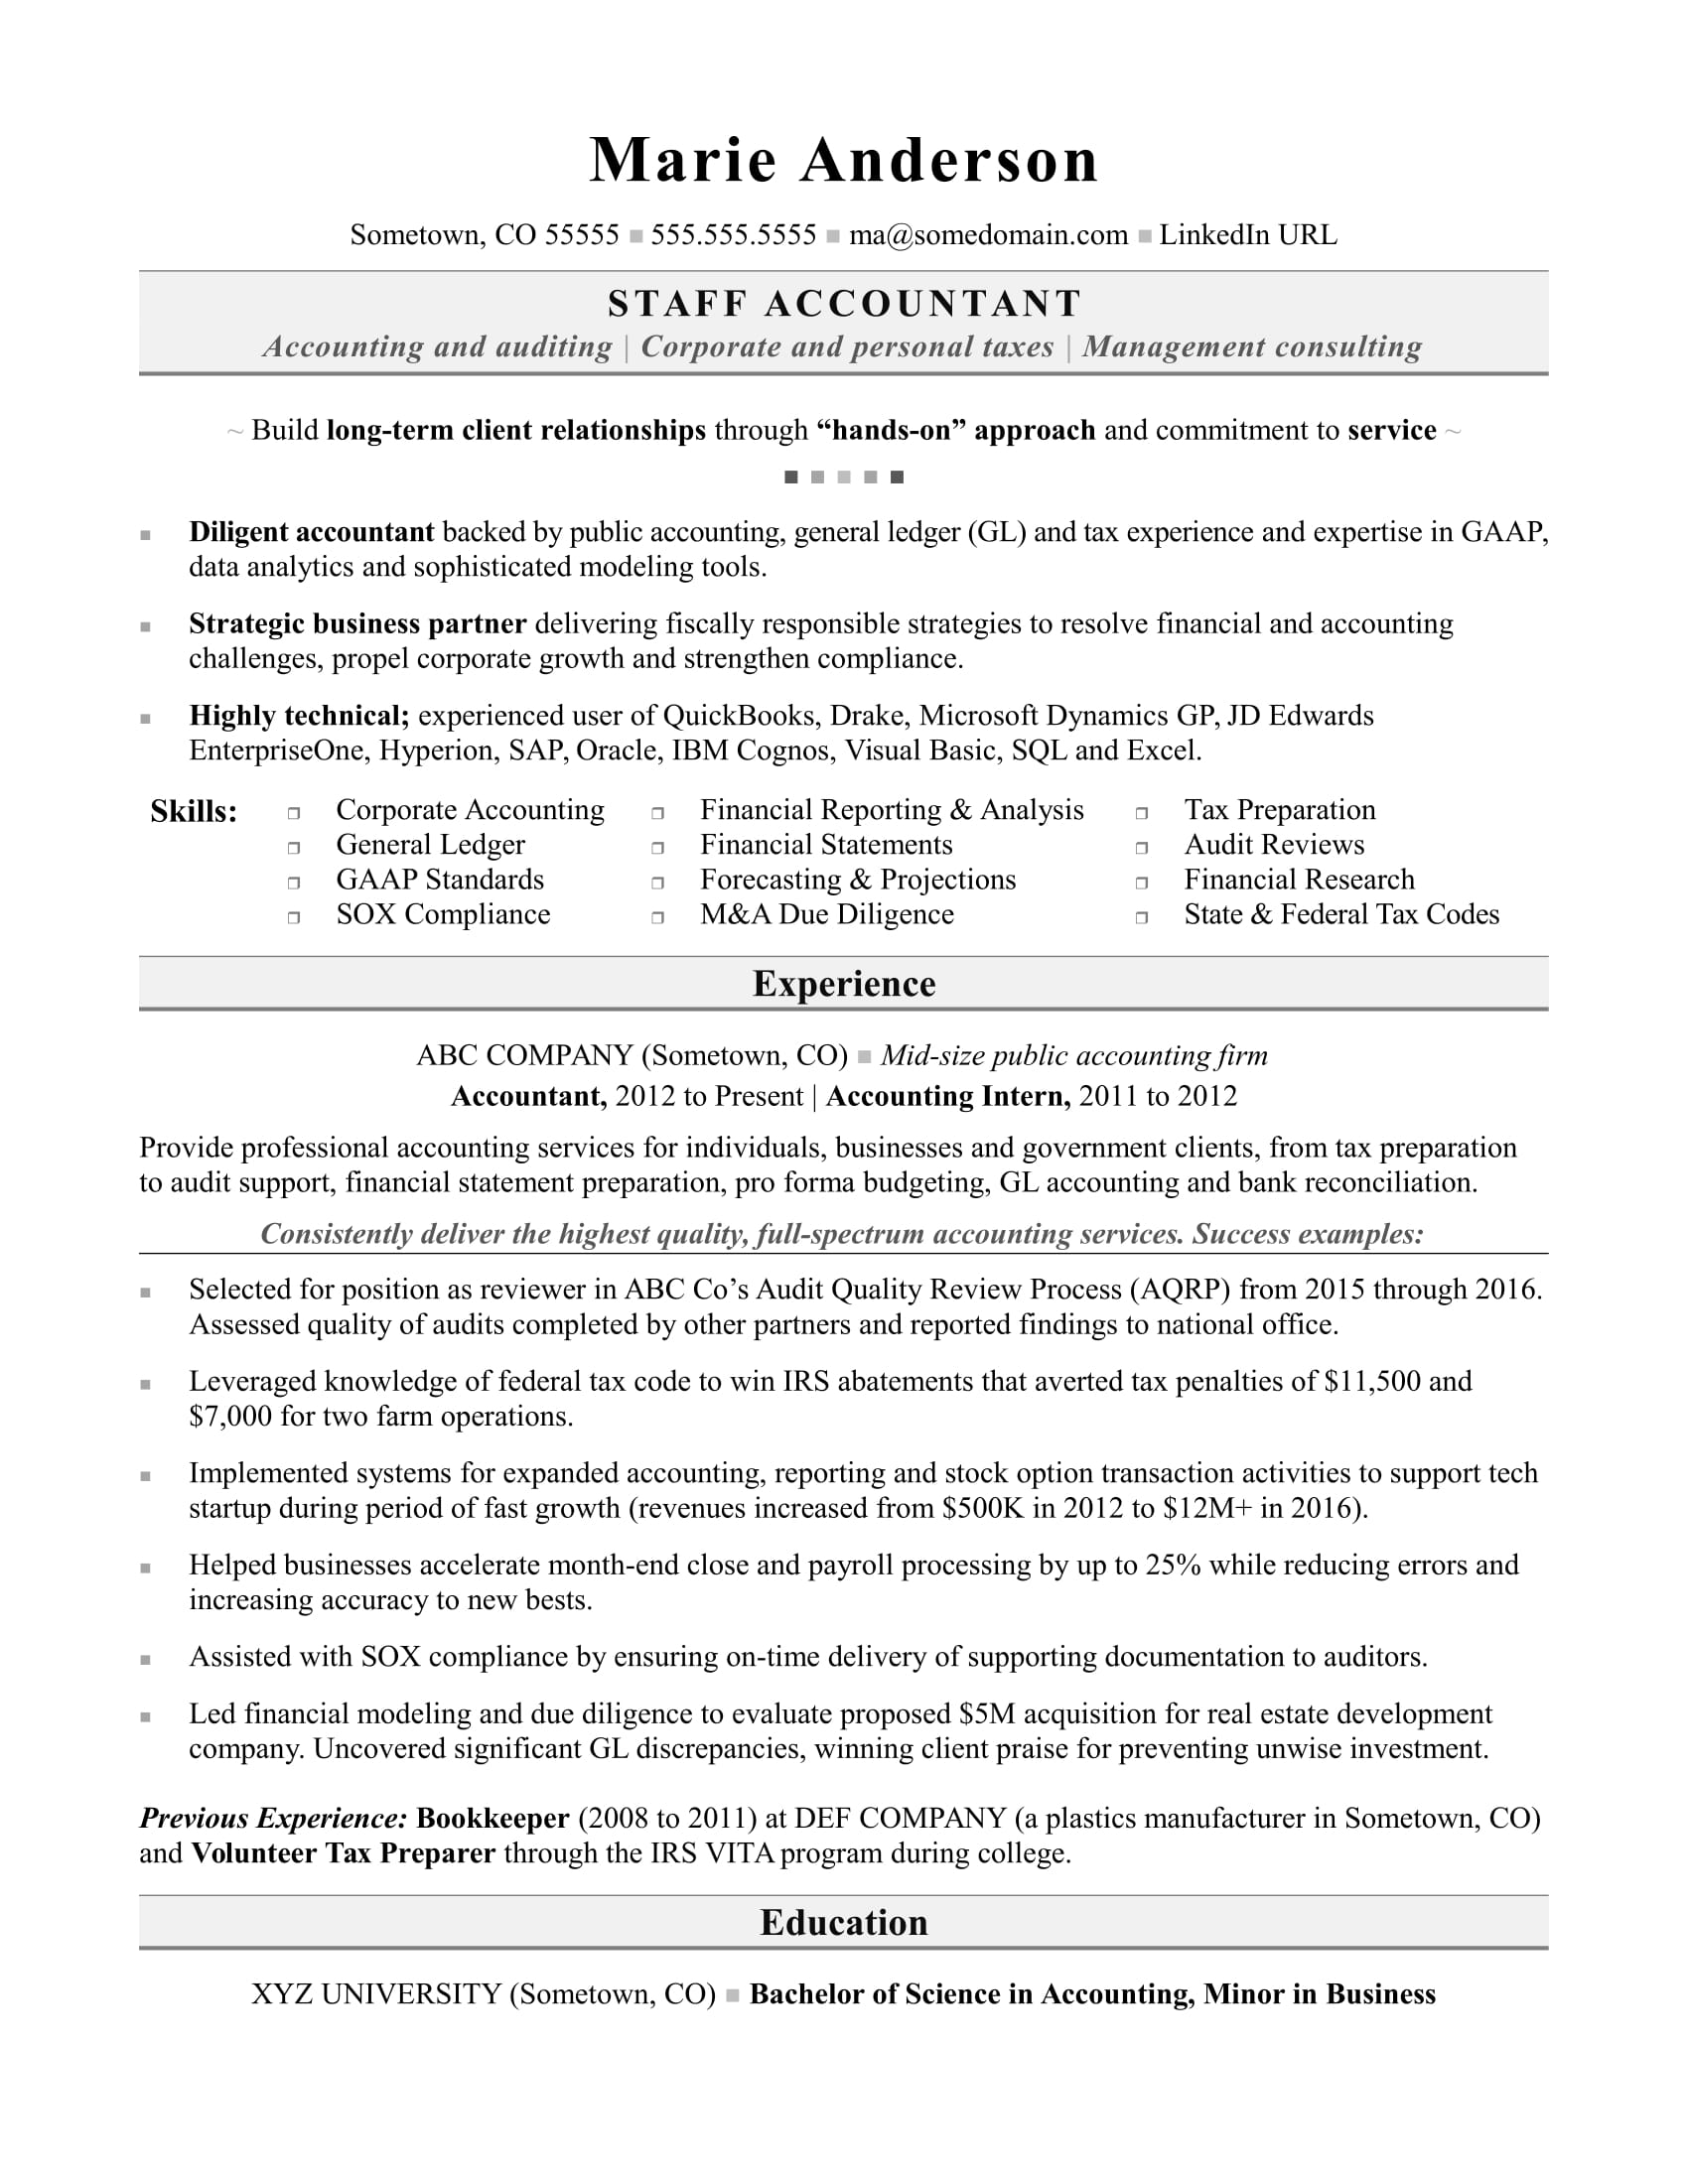 accounting resume sample monster government accountant for men electronic cake decorator Resume Government Accountant Resume